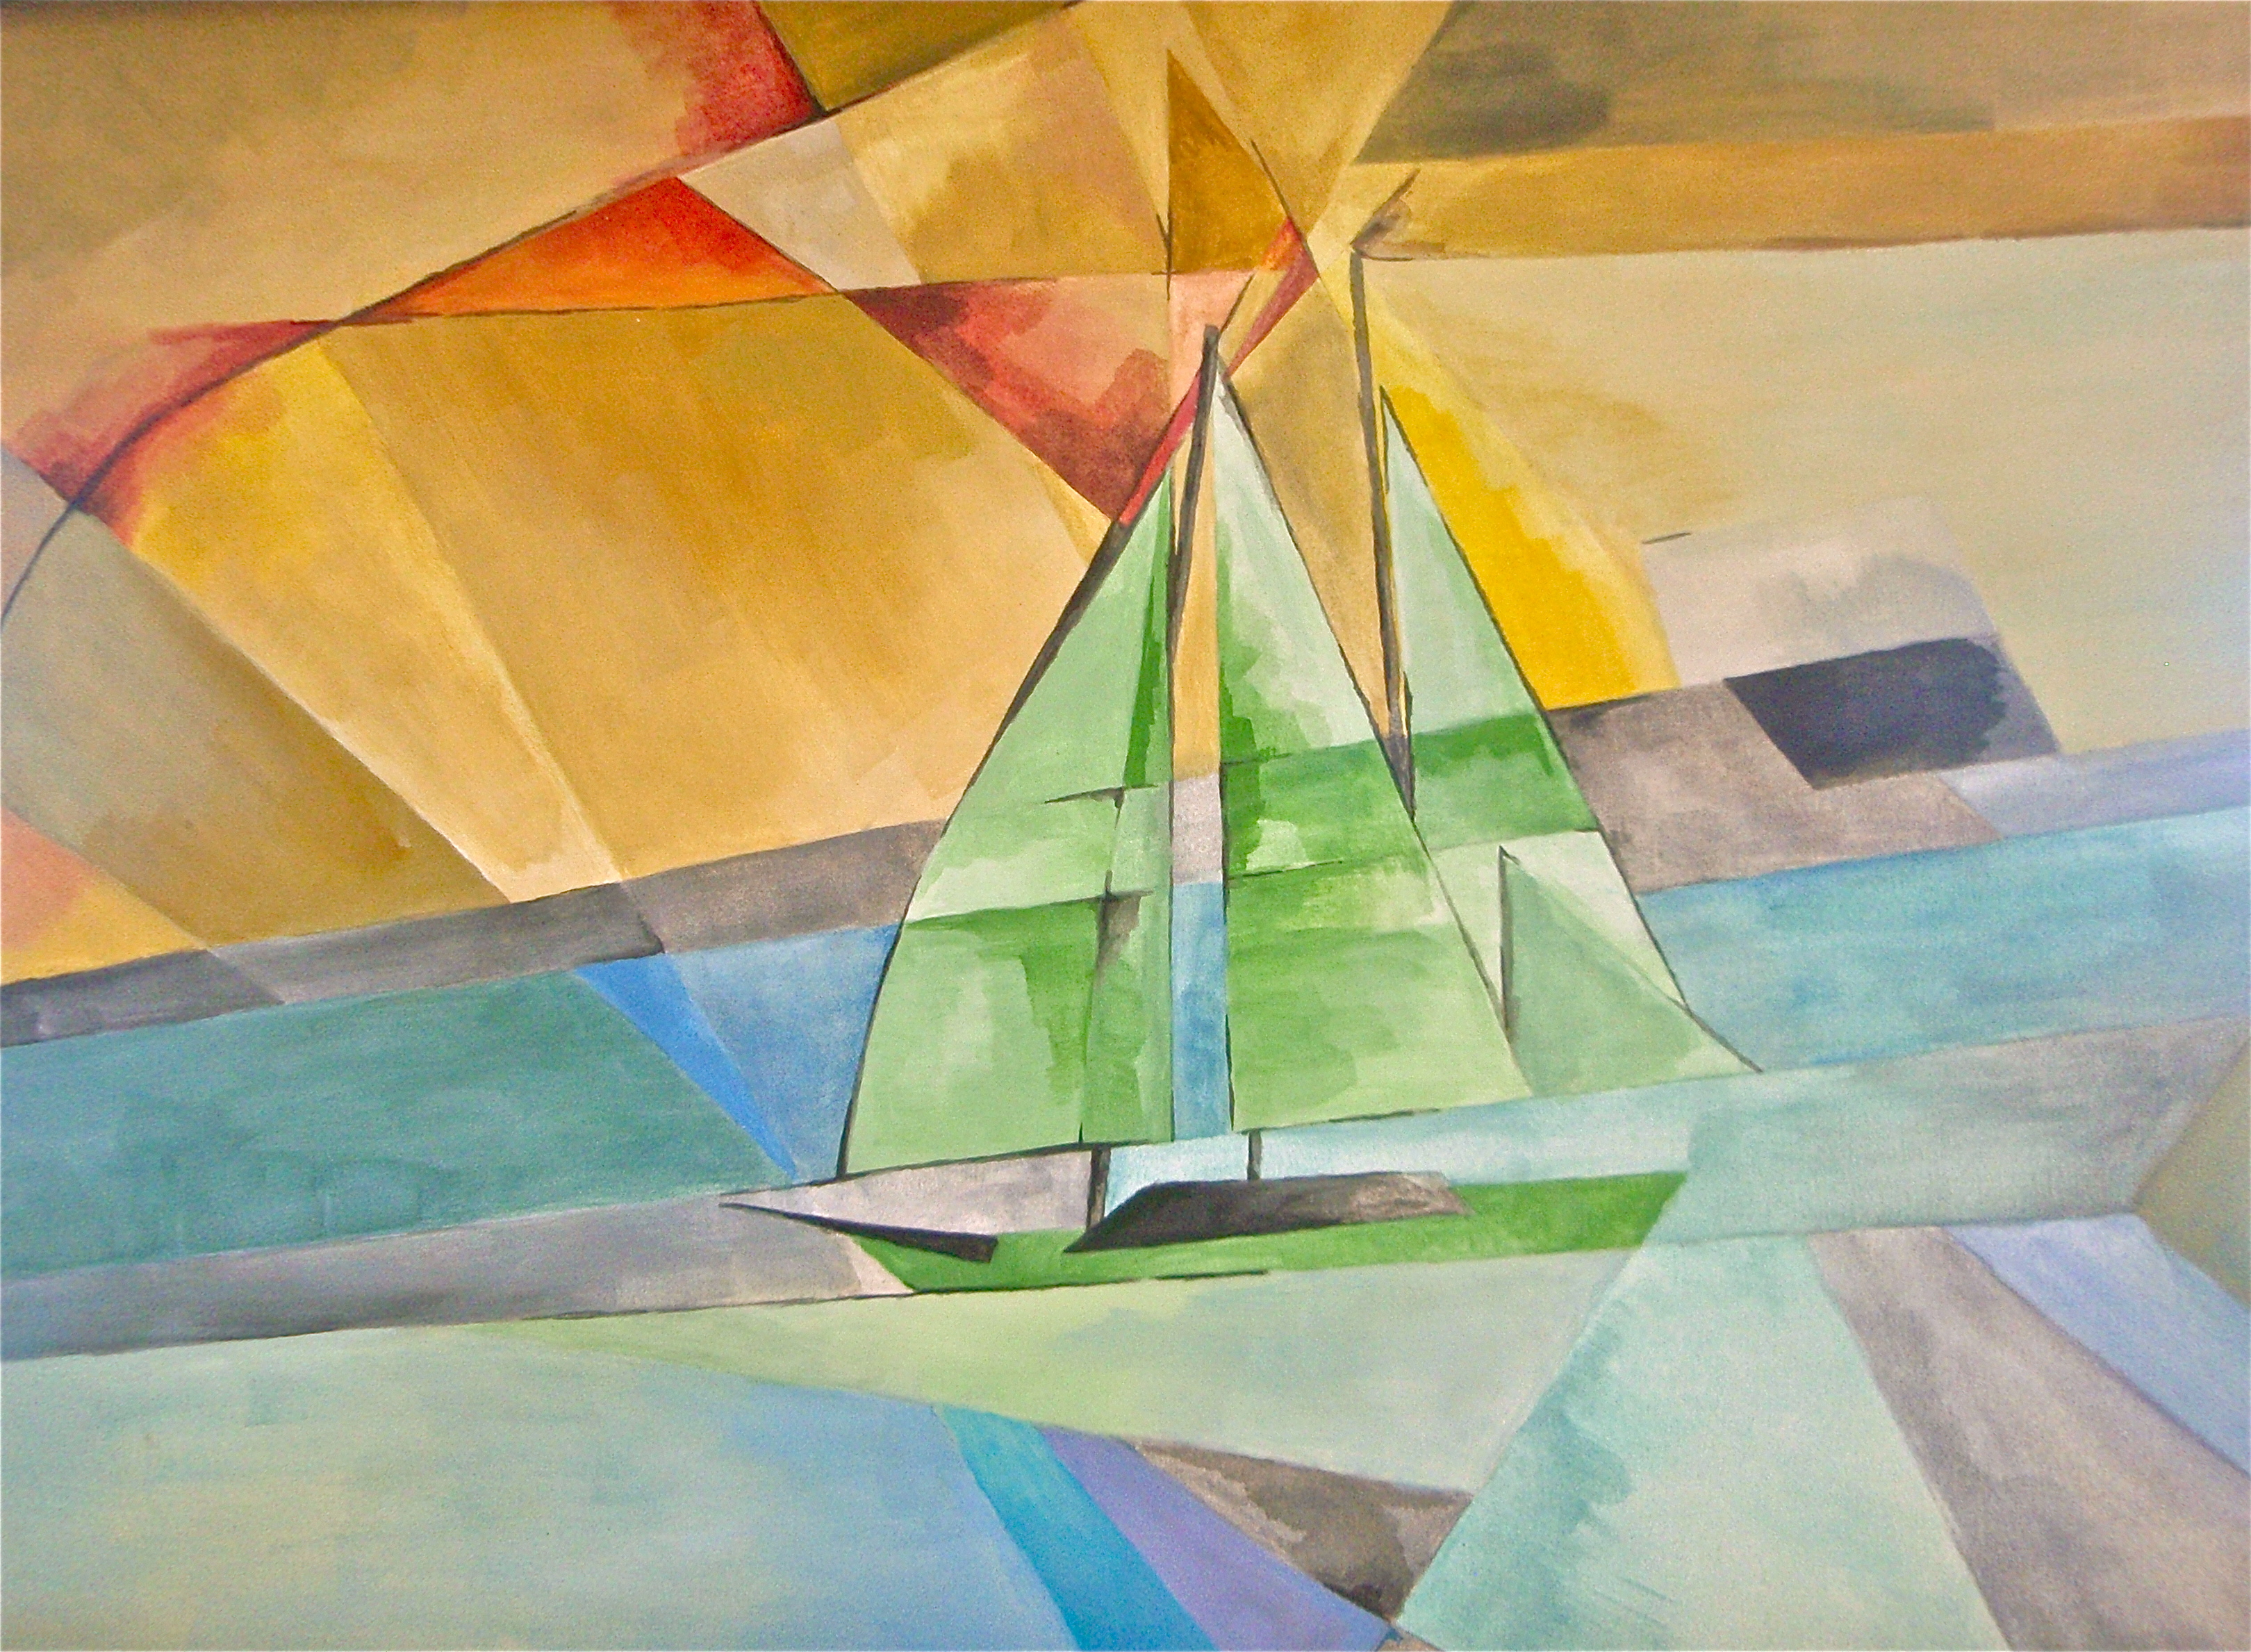 an examination of cubist movement in art This is a complete presentation about cubist art with a 100 point exam (total 270 slides) the major figures from this movement are given thorough coverage with individual biographical detail given about each of them.